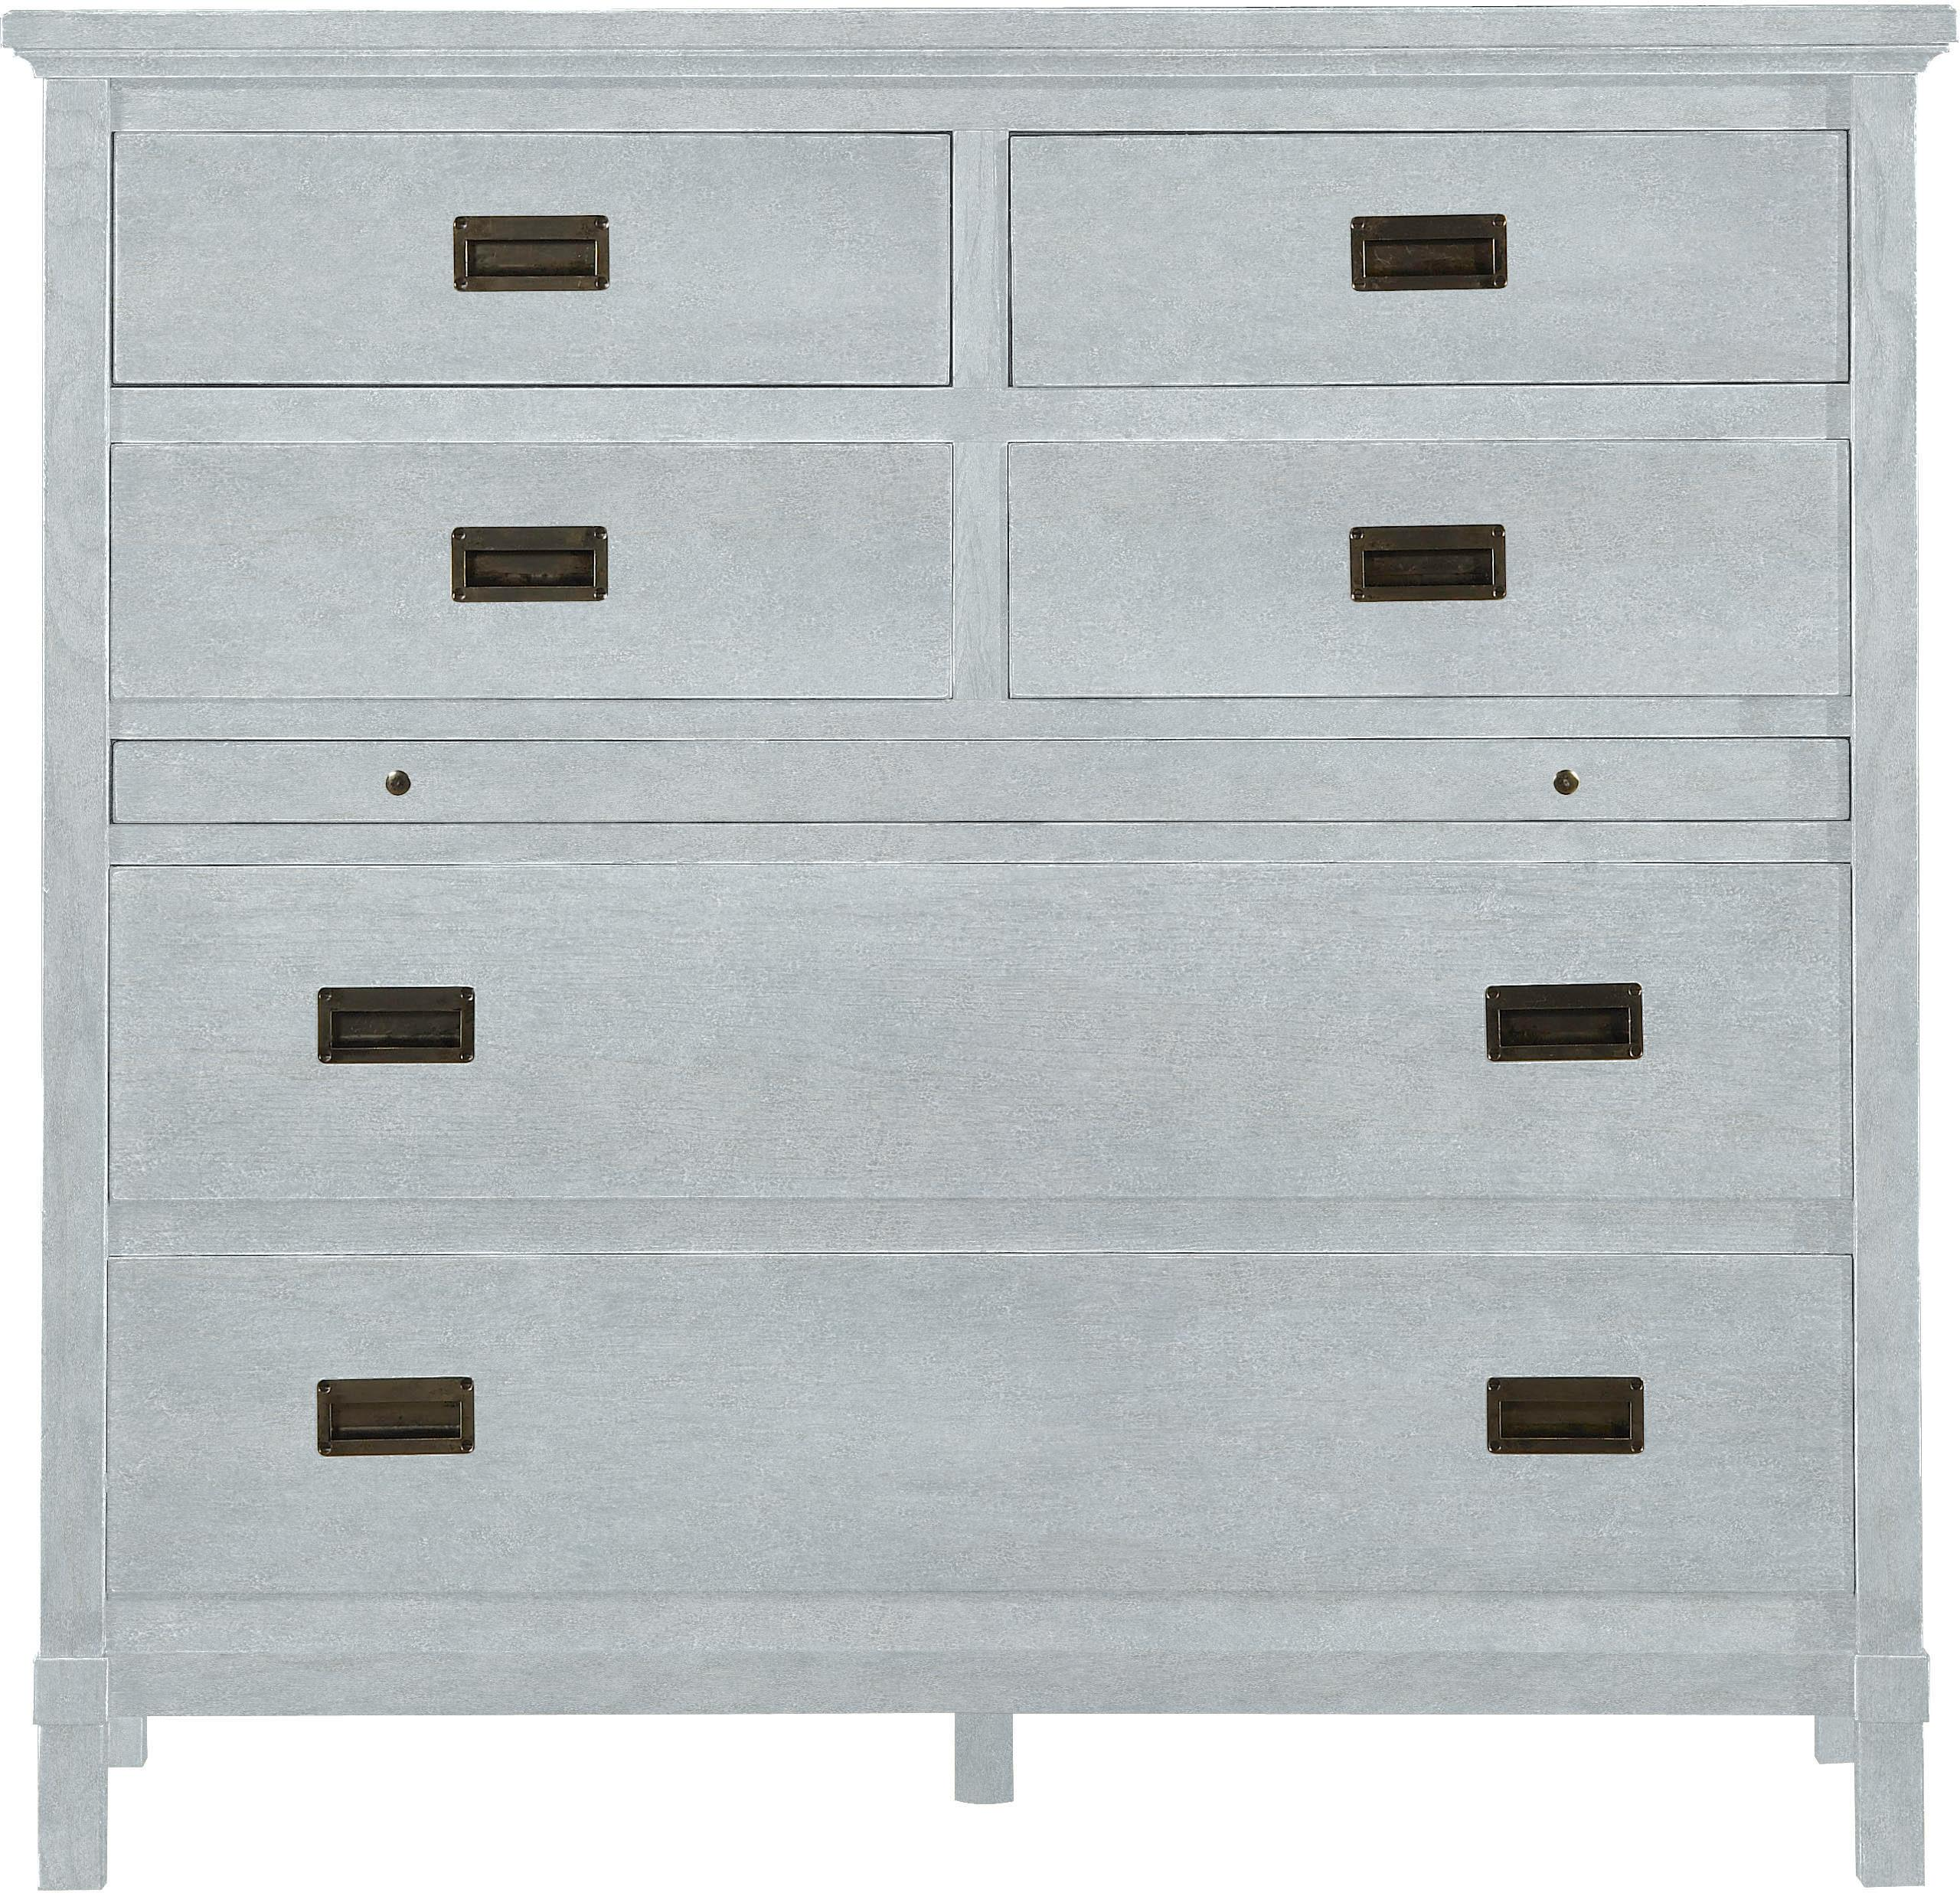 Stanley Furniture Coastal Living Resort Haven's Harbor Media Chest - Item Number: 062-H3-11